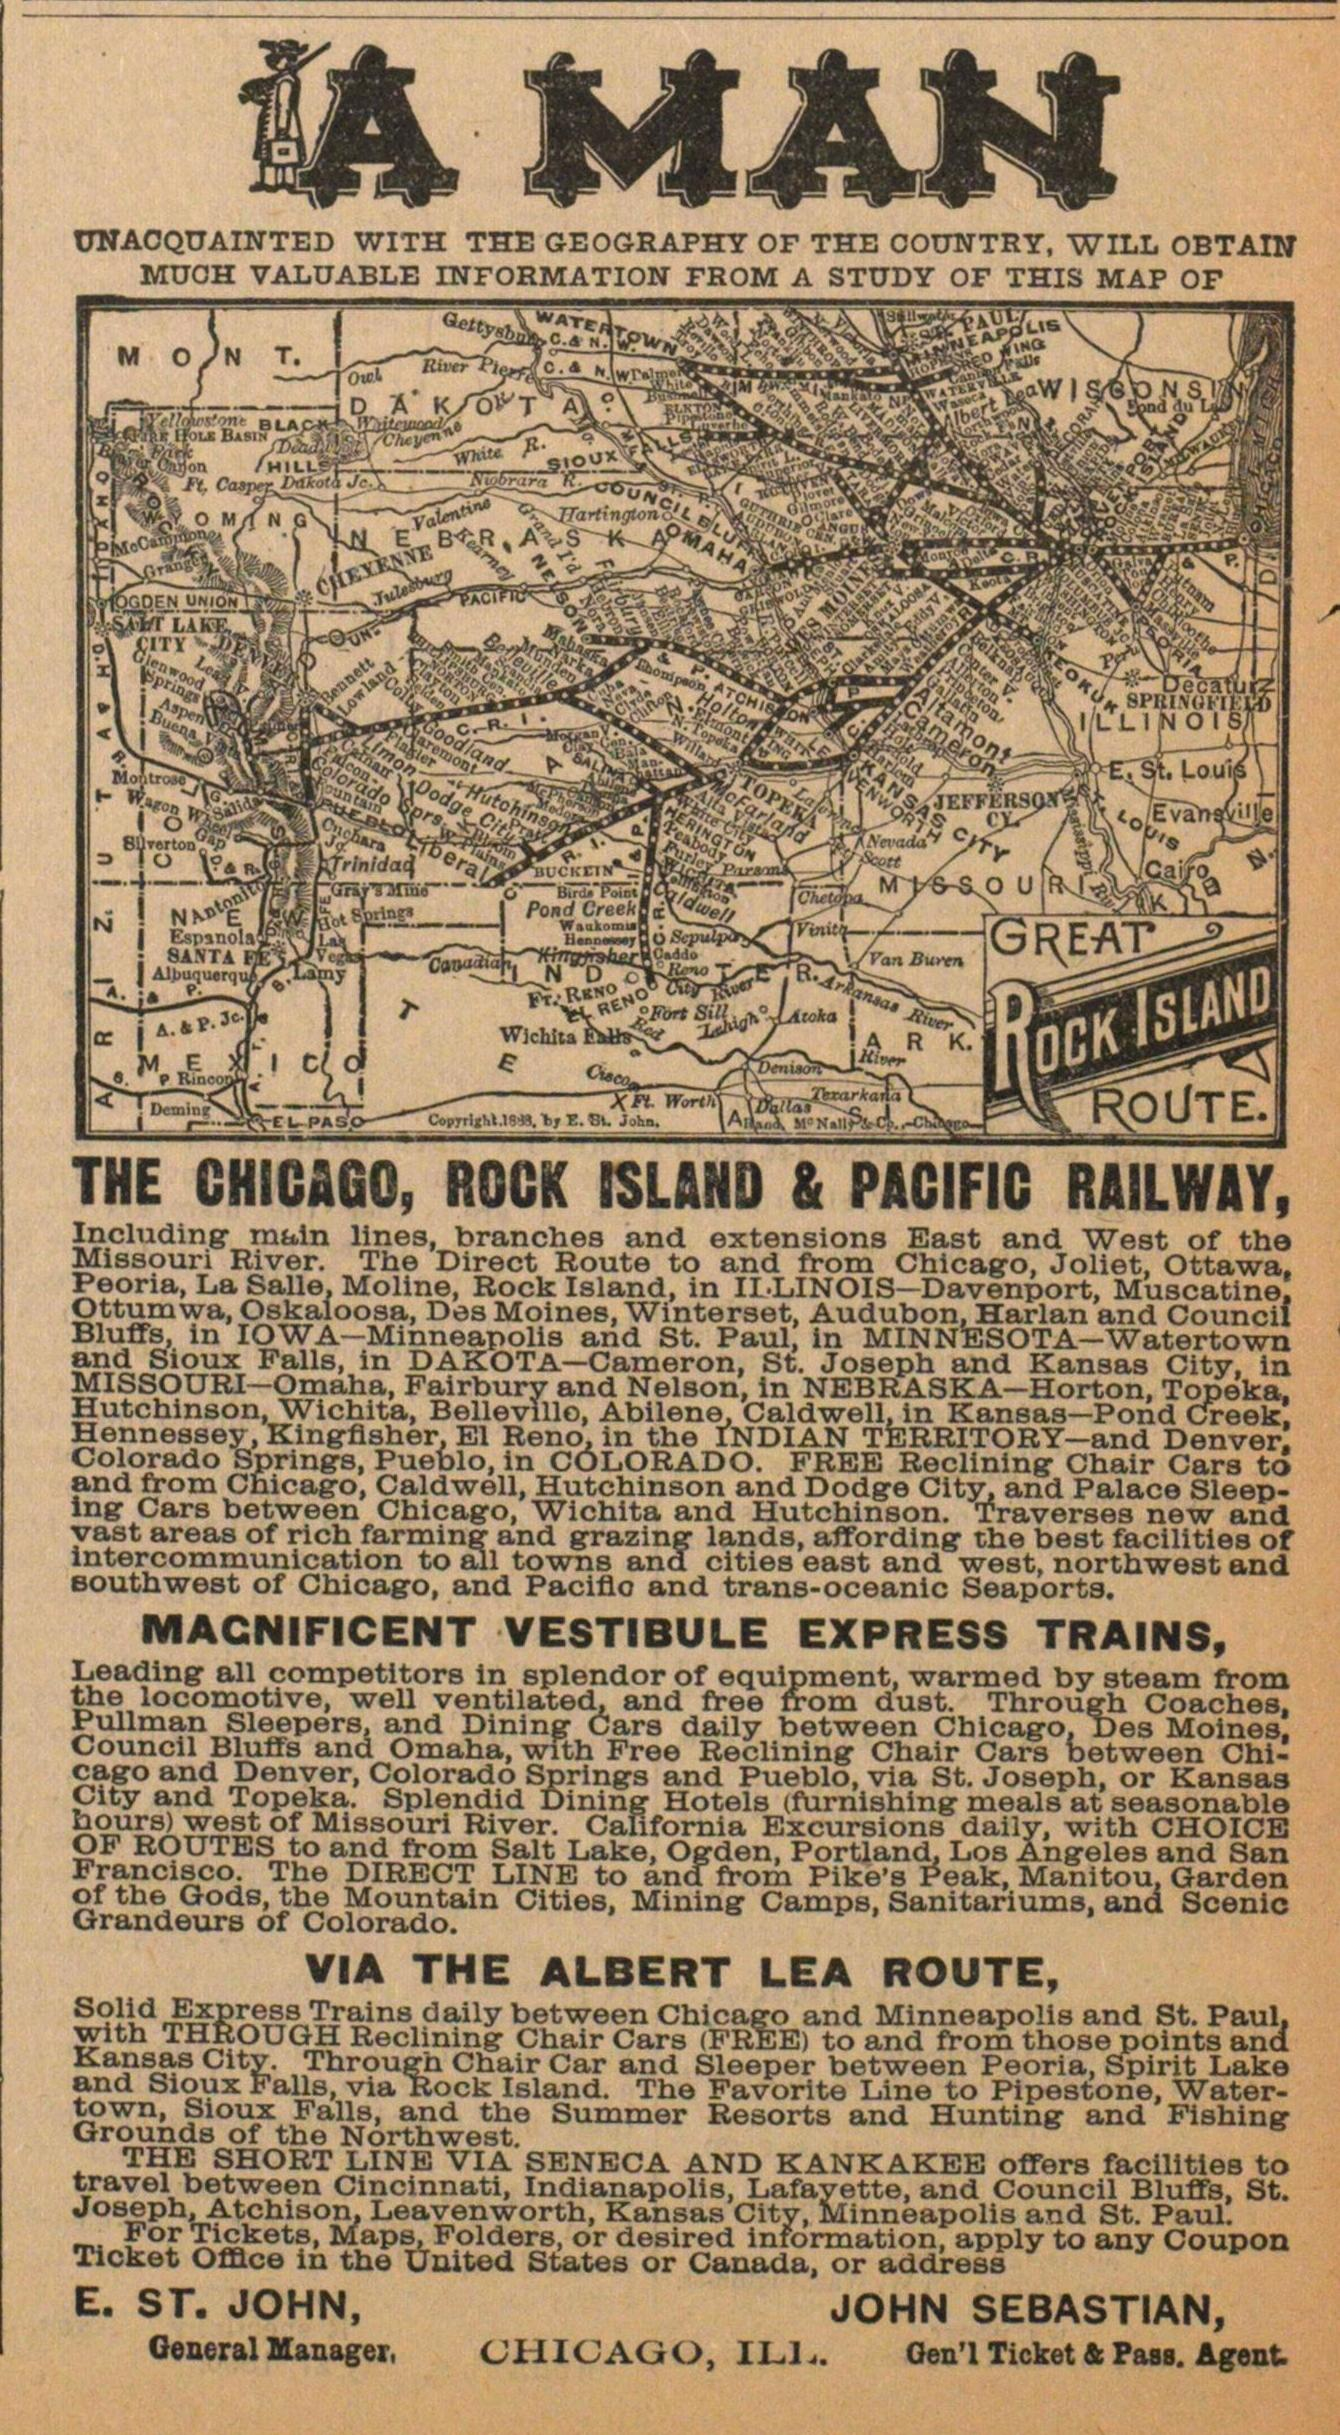 Great Rock Island Route image